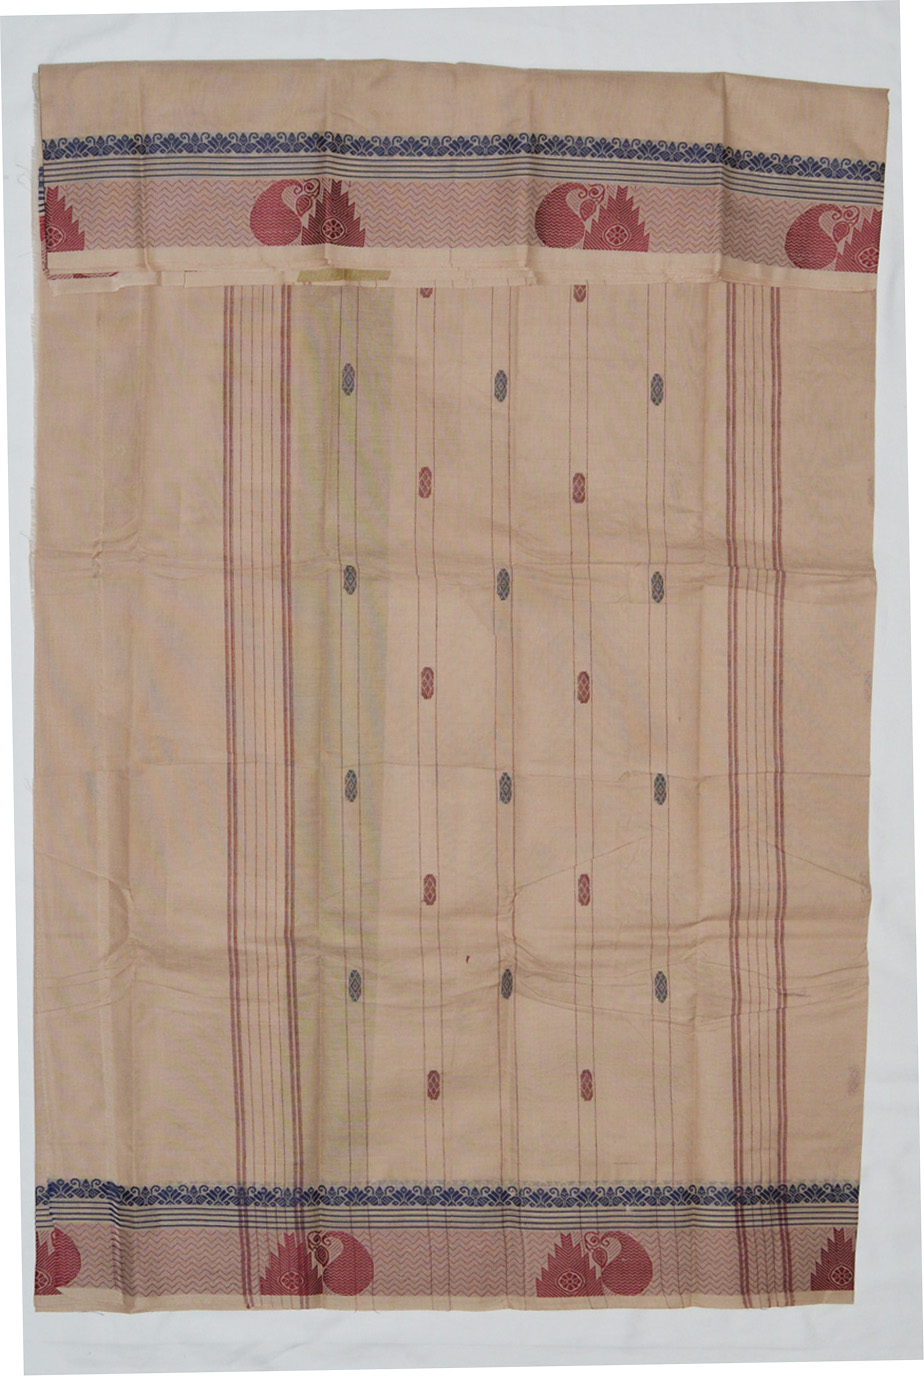 Kanchi Cotton 2707